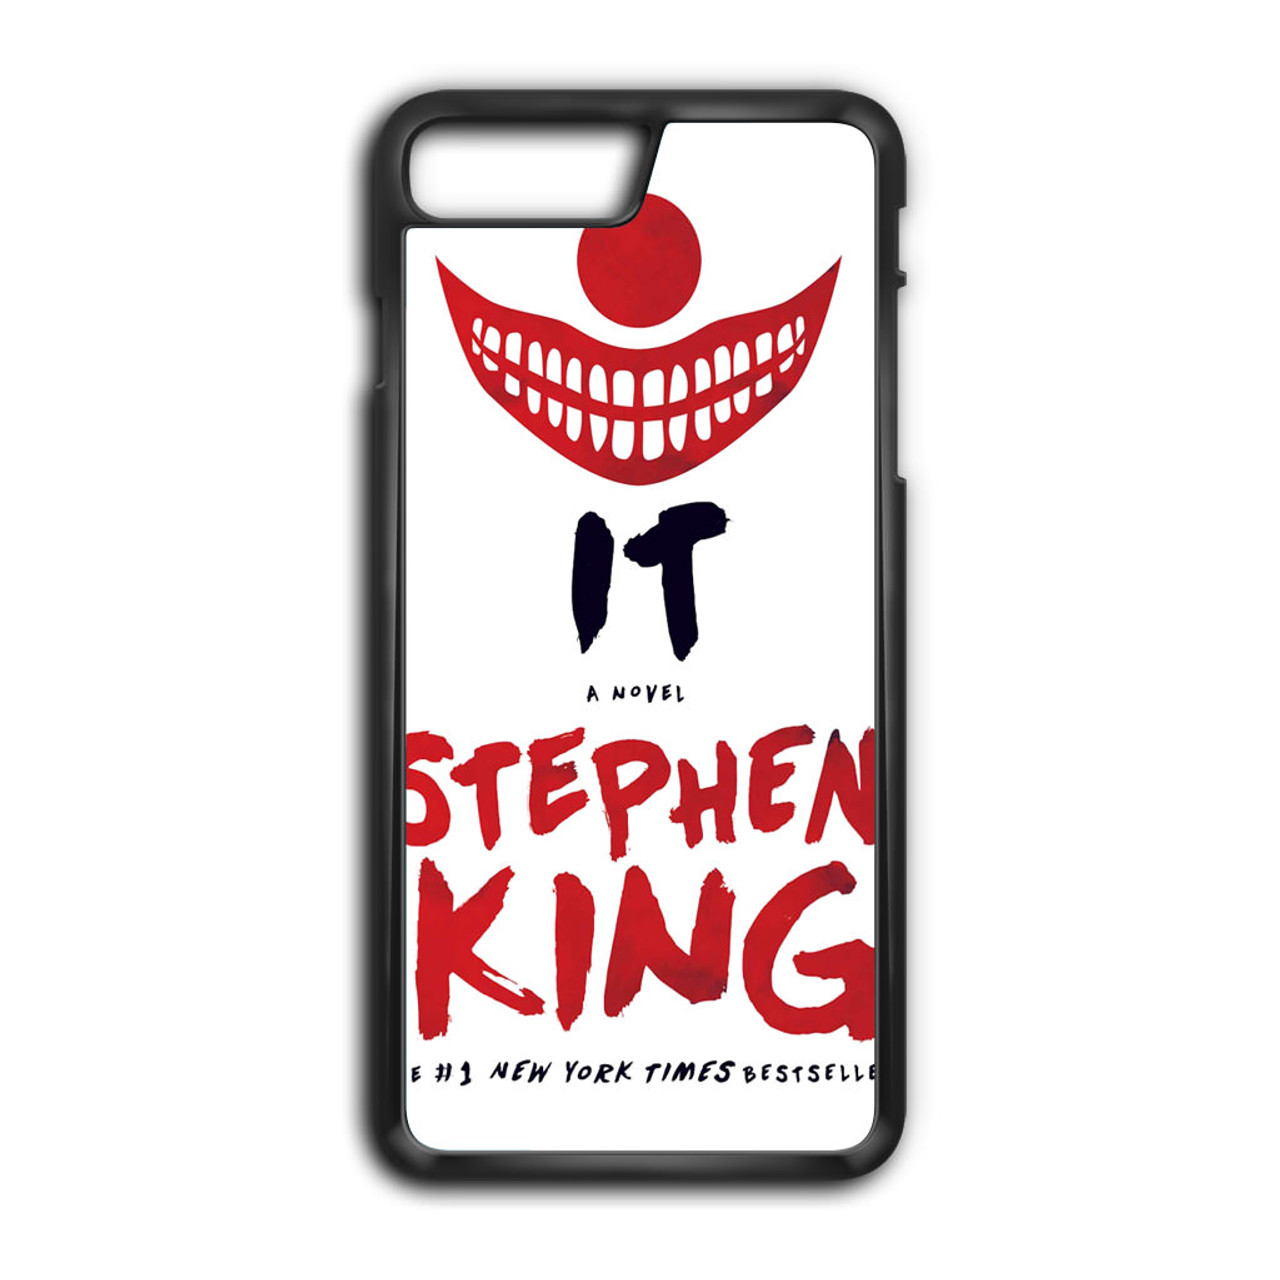 75d31989b935 Stephen King IT Book Cover iPhone 8 Plus Case - CASESHUNTER